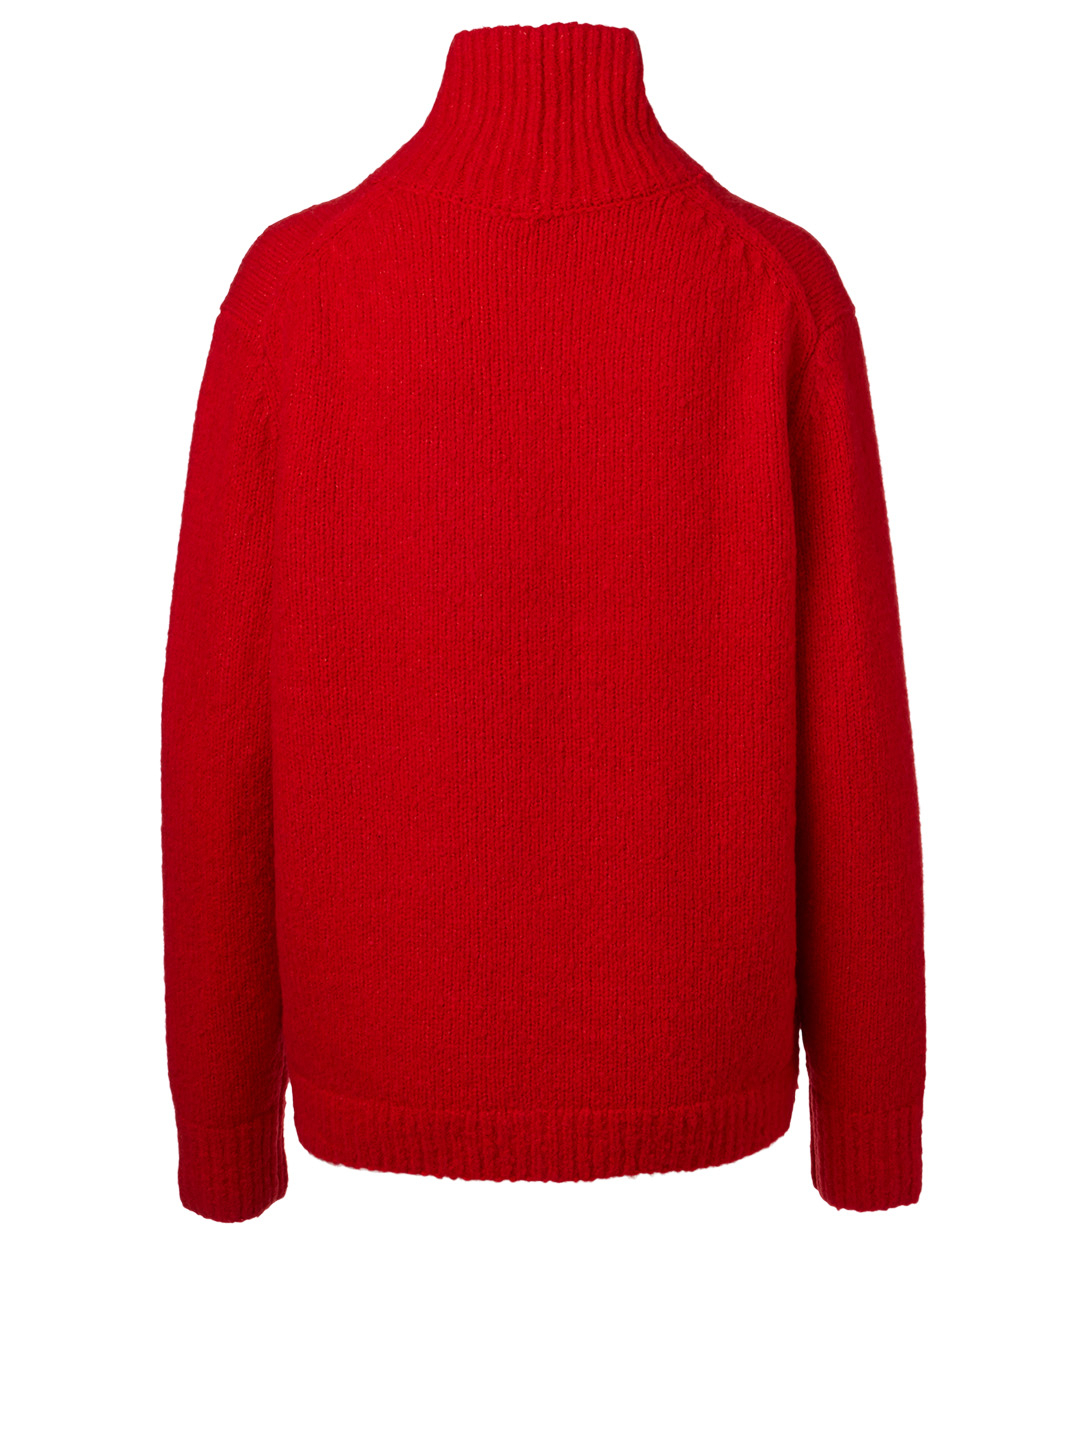 ACNE STUDIOS Wool And Cashmere Turtleneck Sweater Women's Red